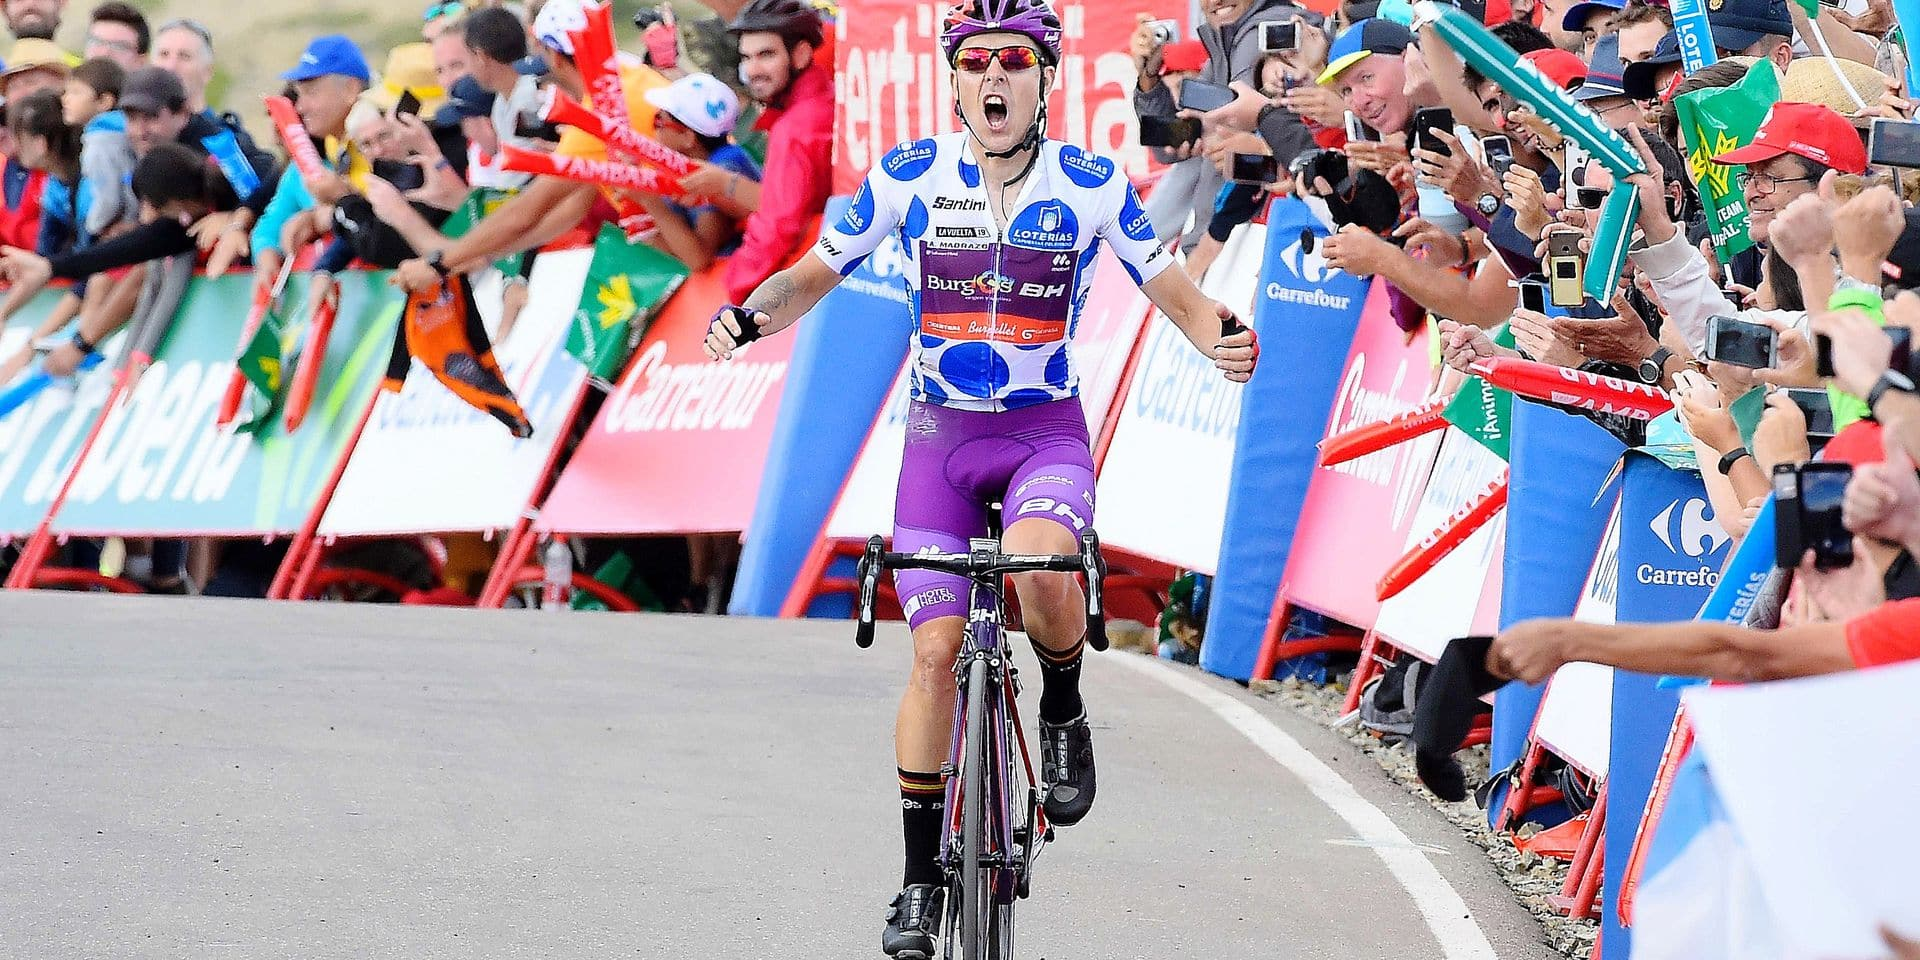 Team Burgos - BH rider Spain's Angel Madrazo wins the fifth stage of the 2019 La Vuelta cycling tour of Spain, a 170,7 km race from L'Eliana and Alto de Javalambre, on August 28, 2019 in Javalambre. (Photo by JOSE JORDAN / AFP)